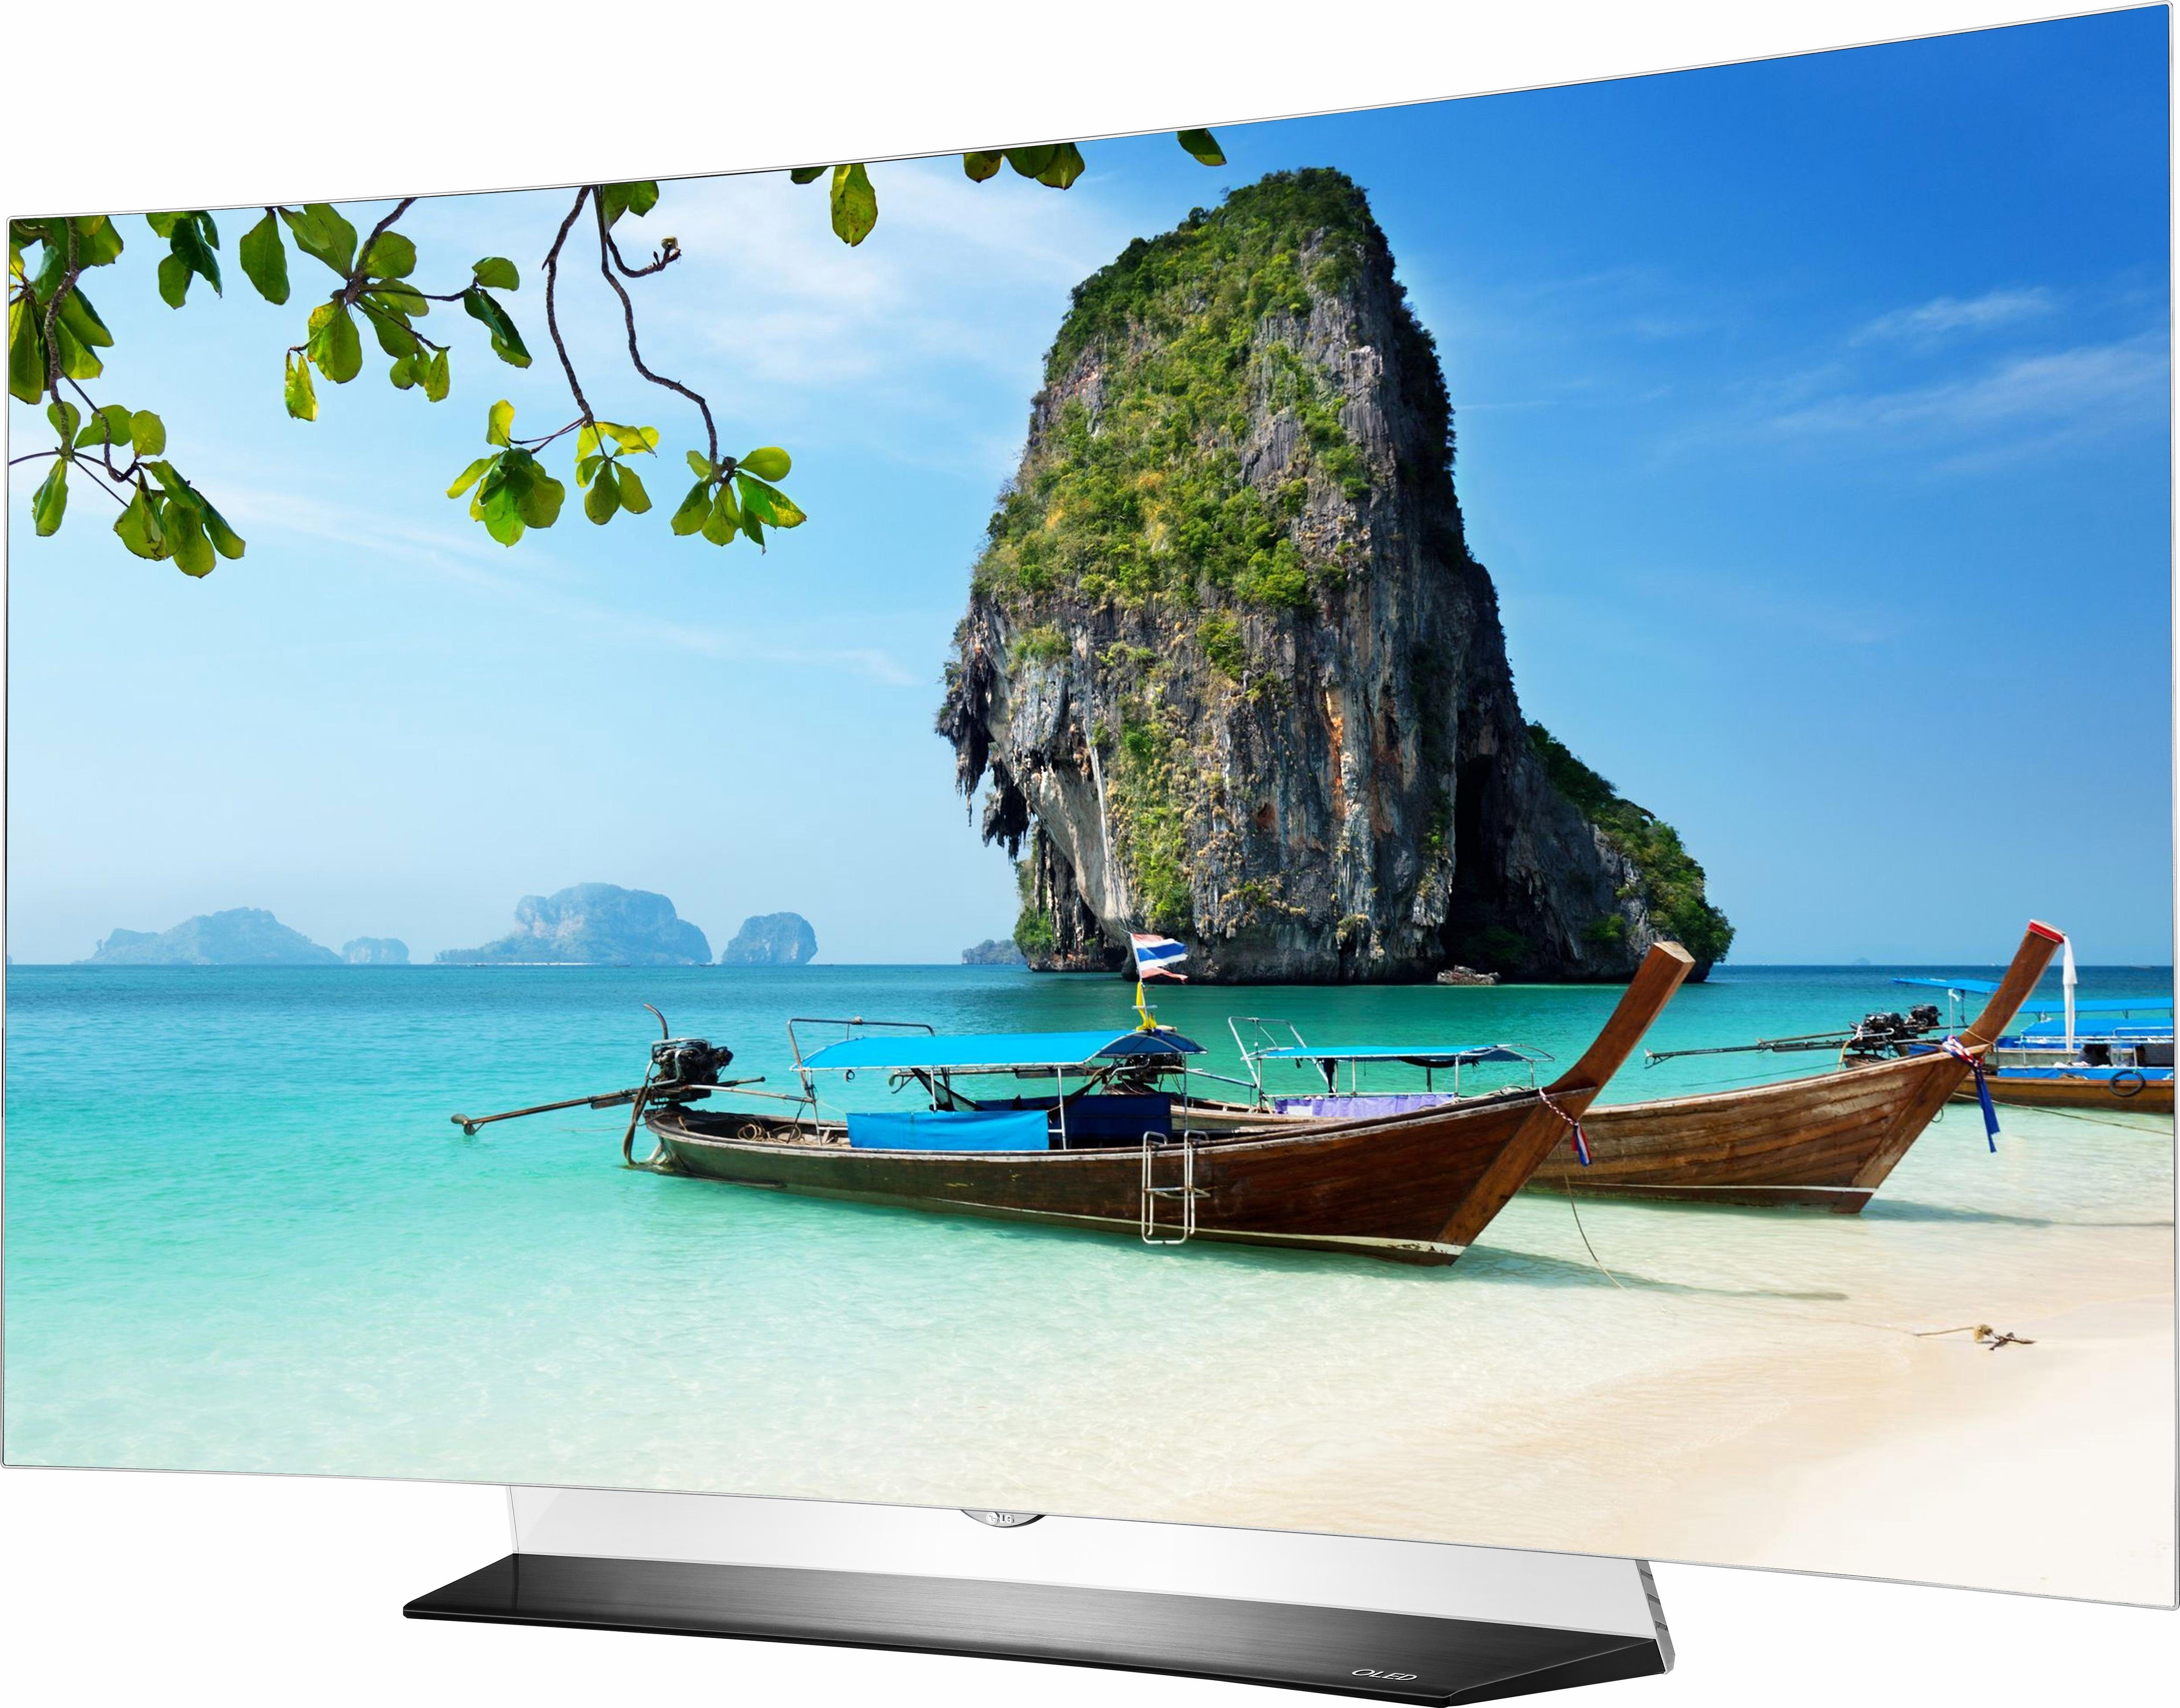 LG OLED55C6D, Curved-OLED-Fernseher, 139 cm (55 Zoll), 2160p (4K Ultra HD), Smart-TV